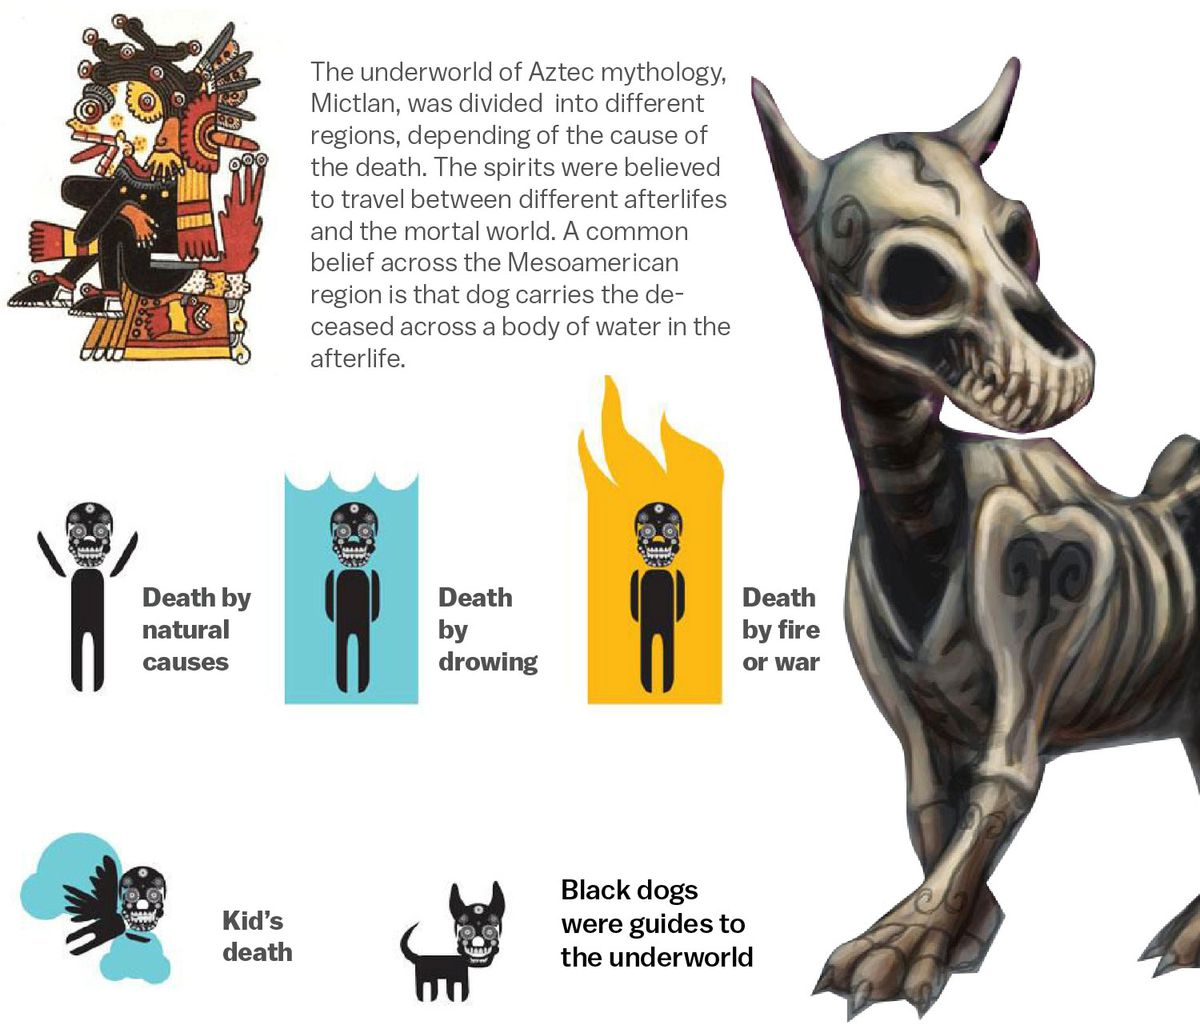 Illustrations of Aztec iconography, including dogs and skulls.